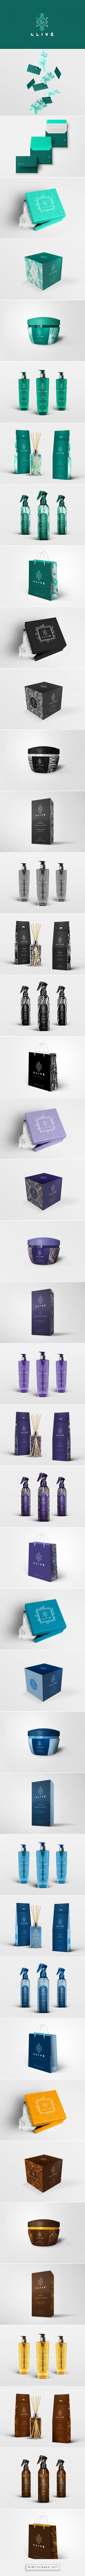 Clivê Cosmetics Branding and Packaging by Jonathan Nacif | Fivestar Branding Agency – Design and Branding Agency & Curated Inspiration Gallery #cosmeticpackaging #packaging #packagedesign #package #design #designinspiration